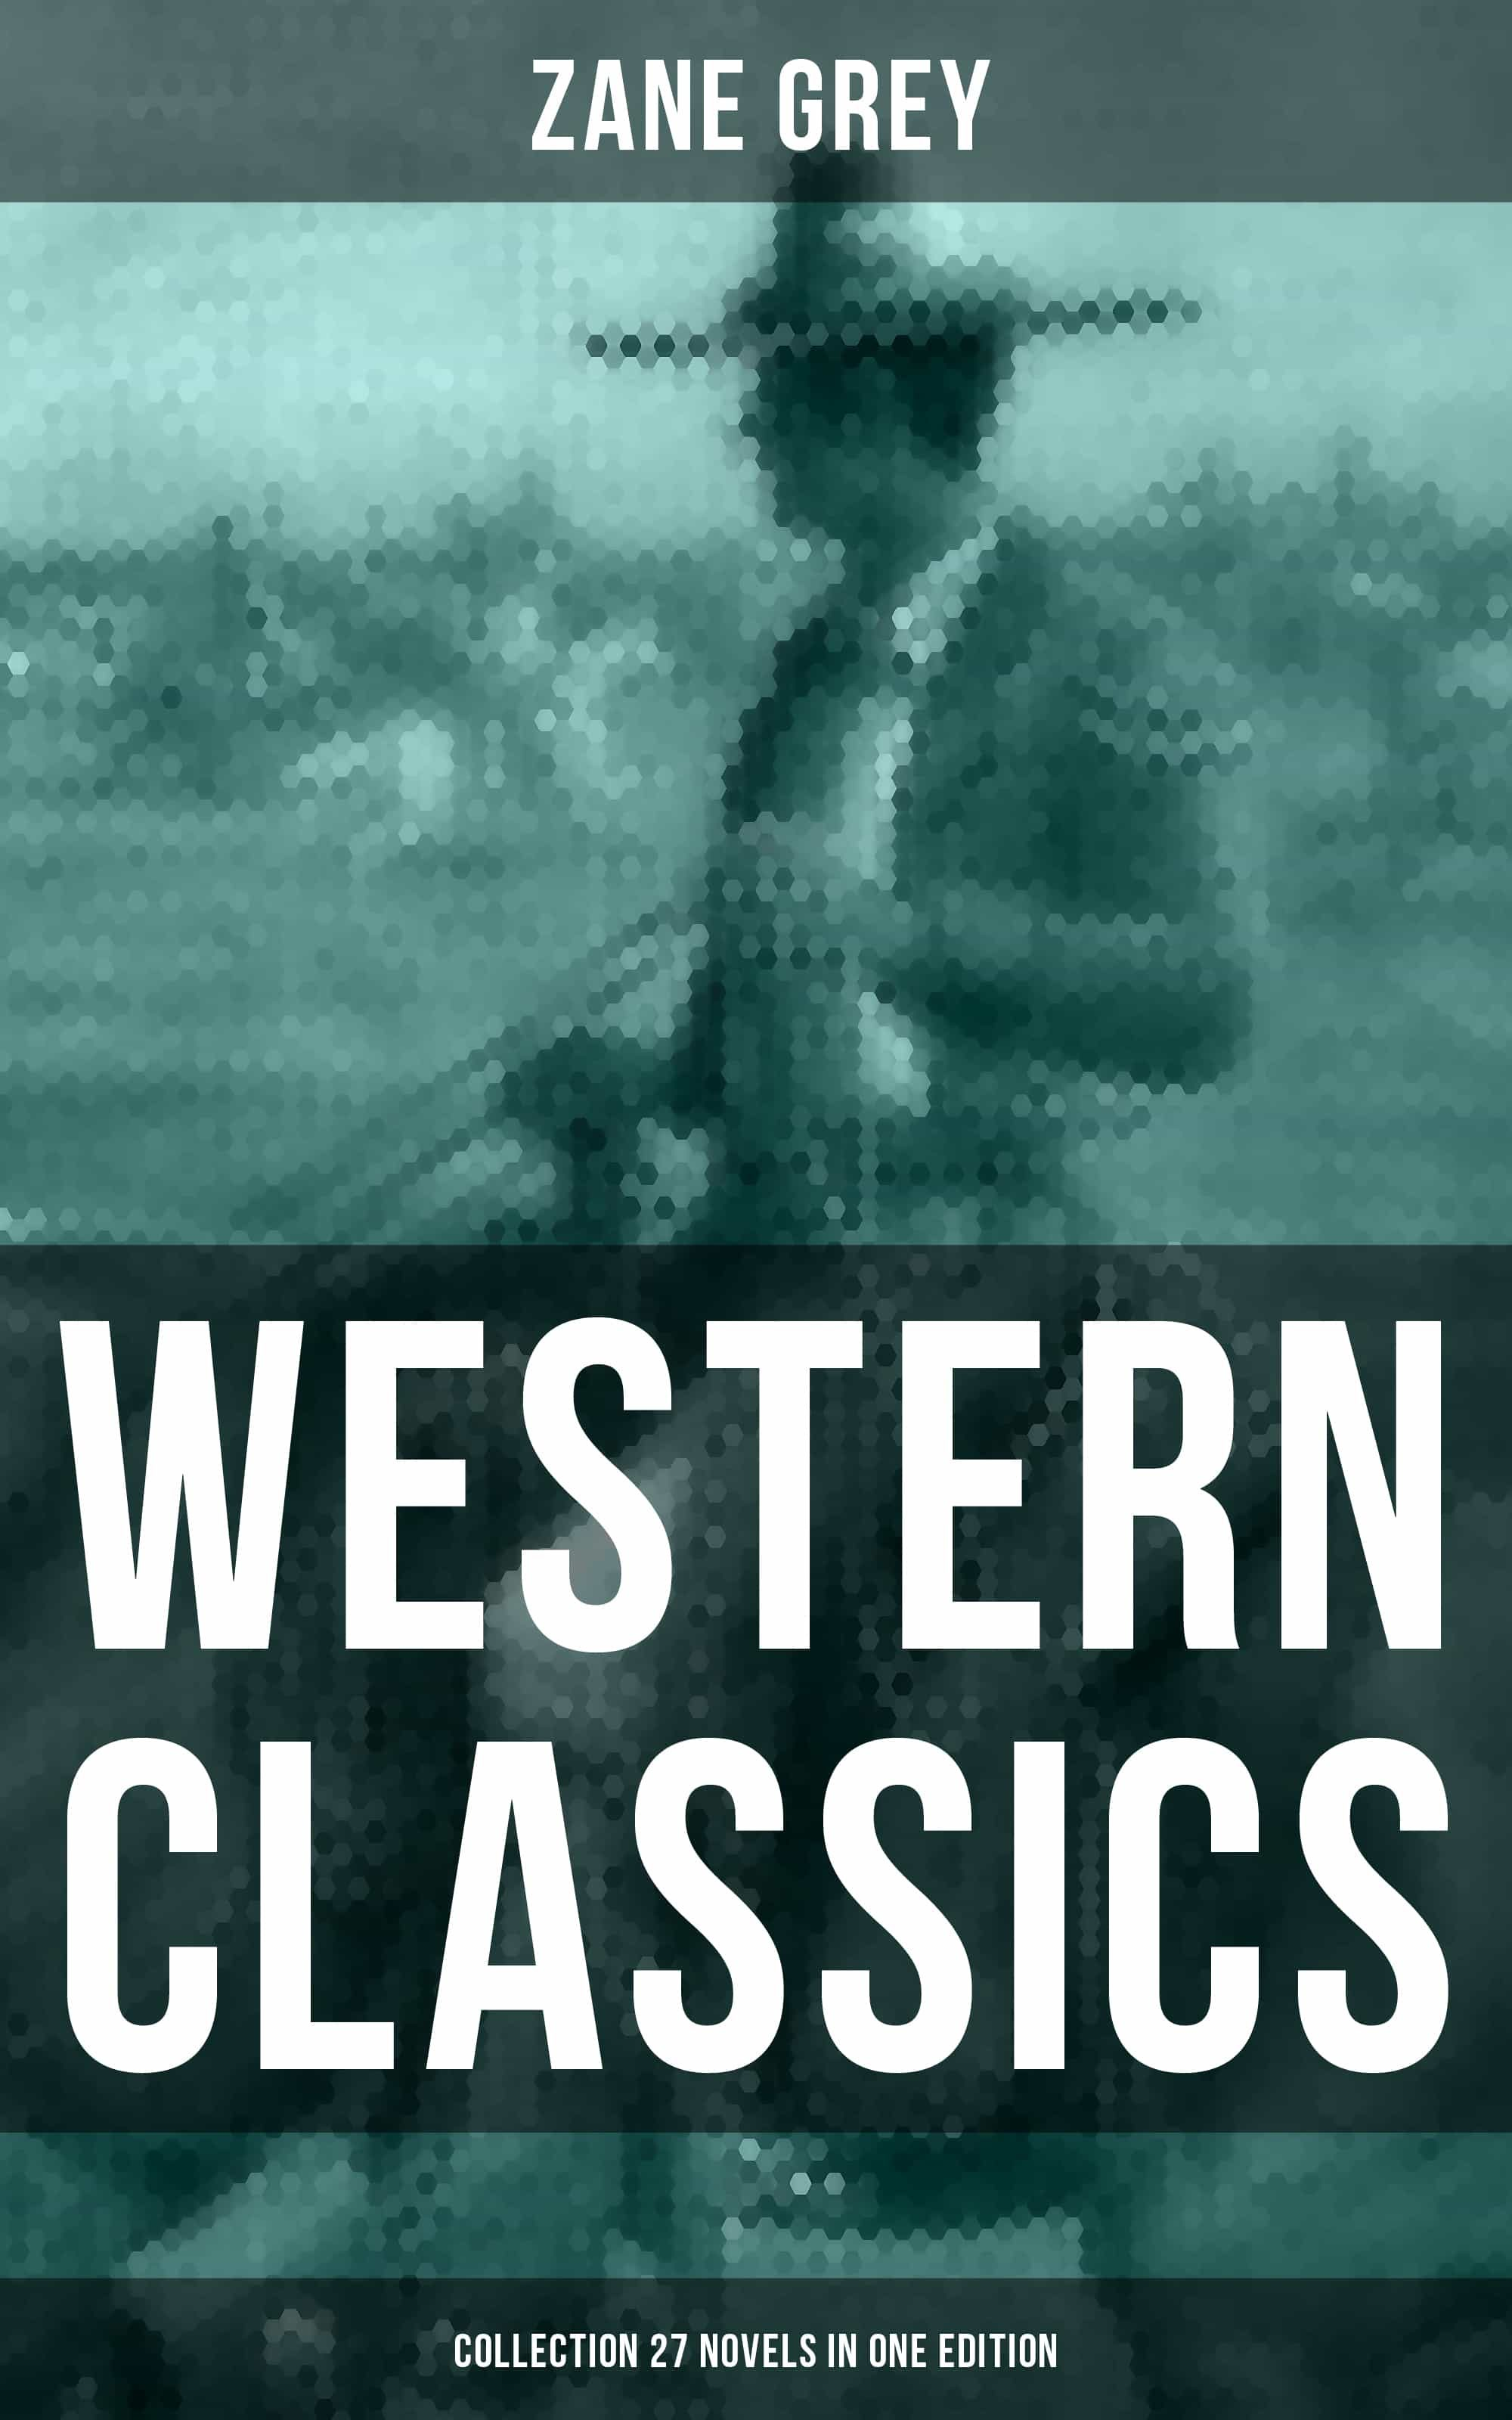 Grey Libro Pdf Western Classics Zane Grey Collection 27 Novels In One Edition Ebook Descargar Libro Pdf O Epub 9788075839541